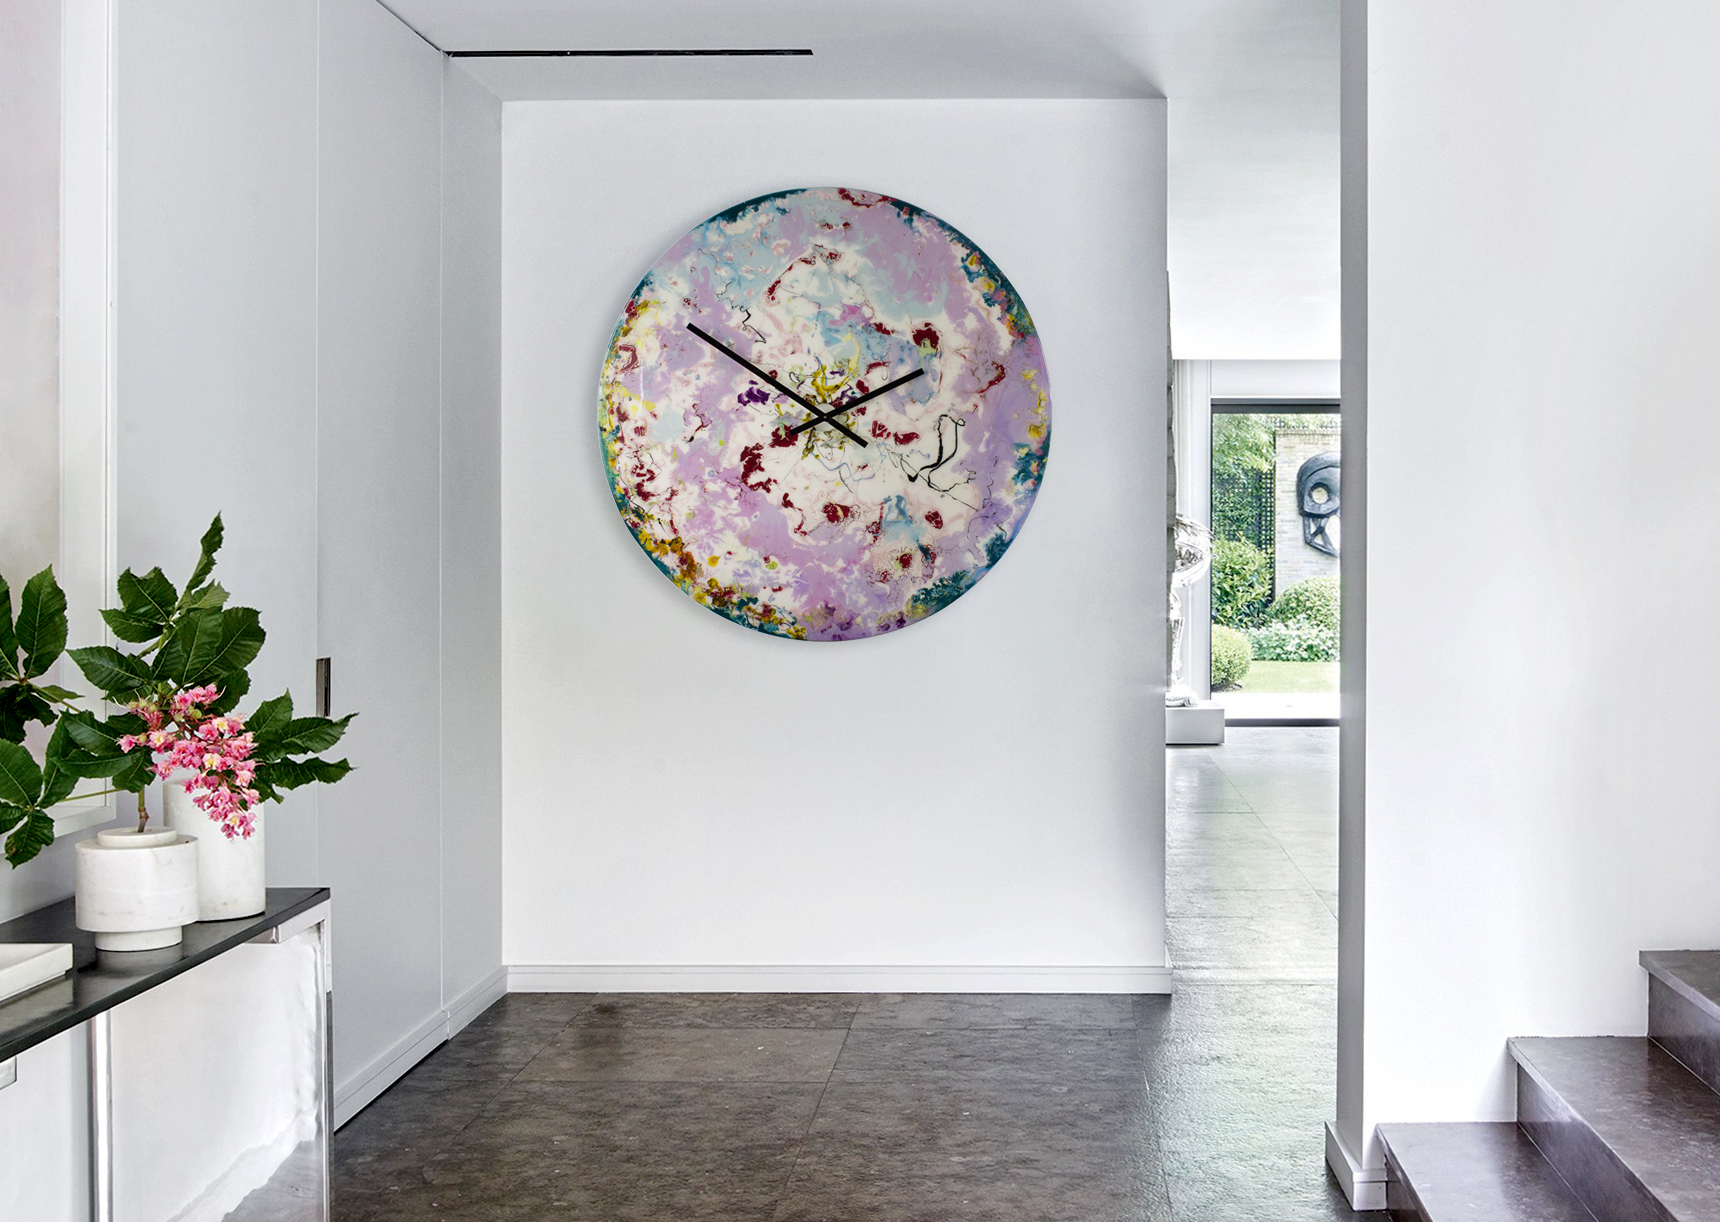 Big Kitchen Wall Clocks Extra Large Kitchen Clock With Ambient Lighting Shop Now